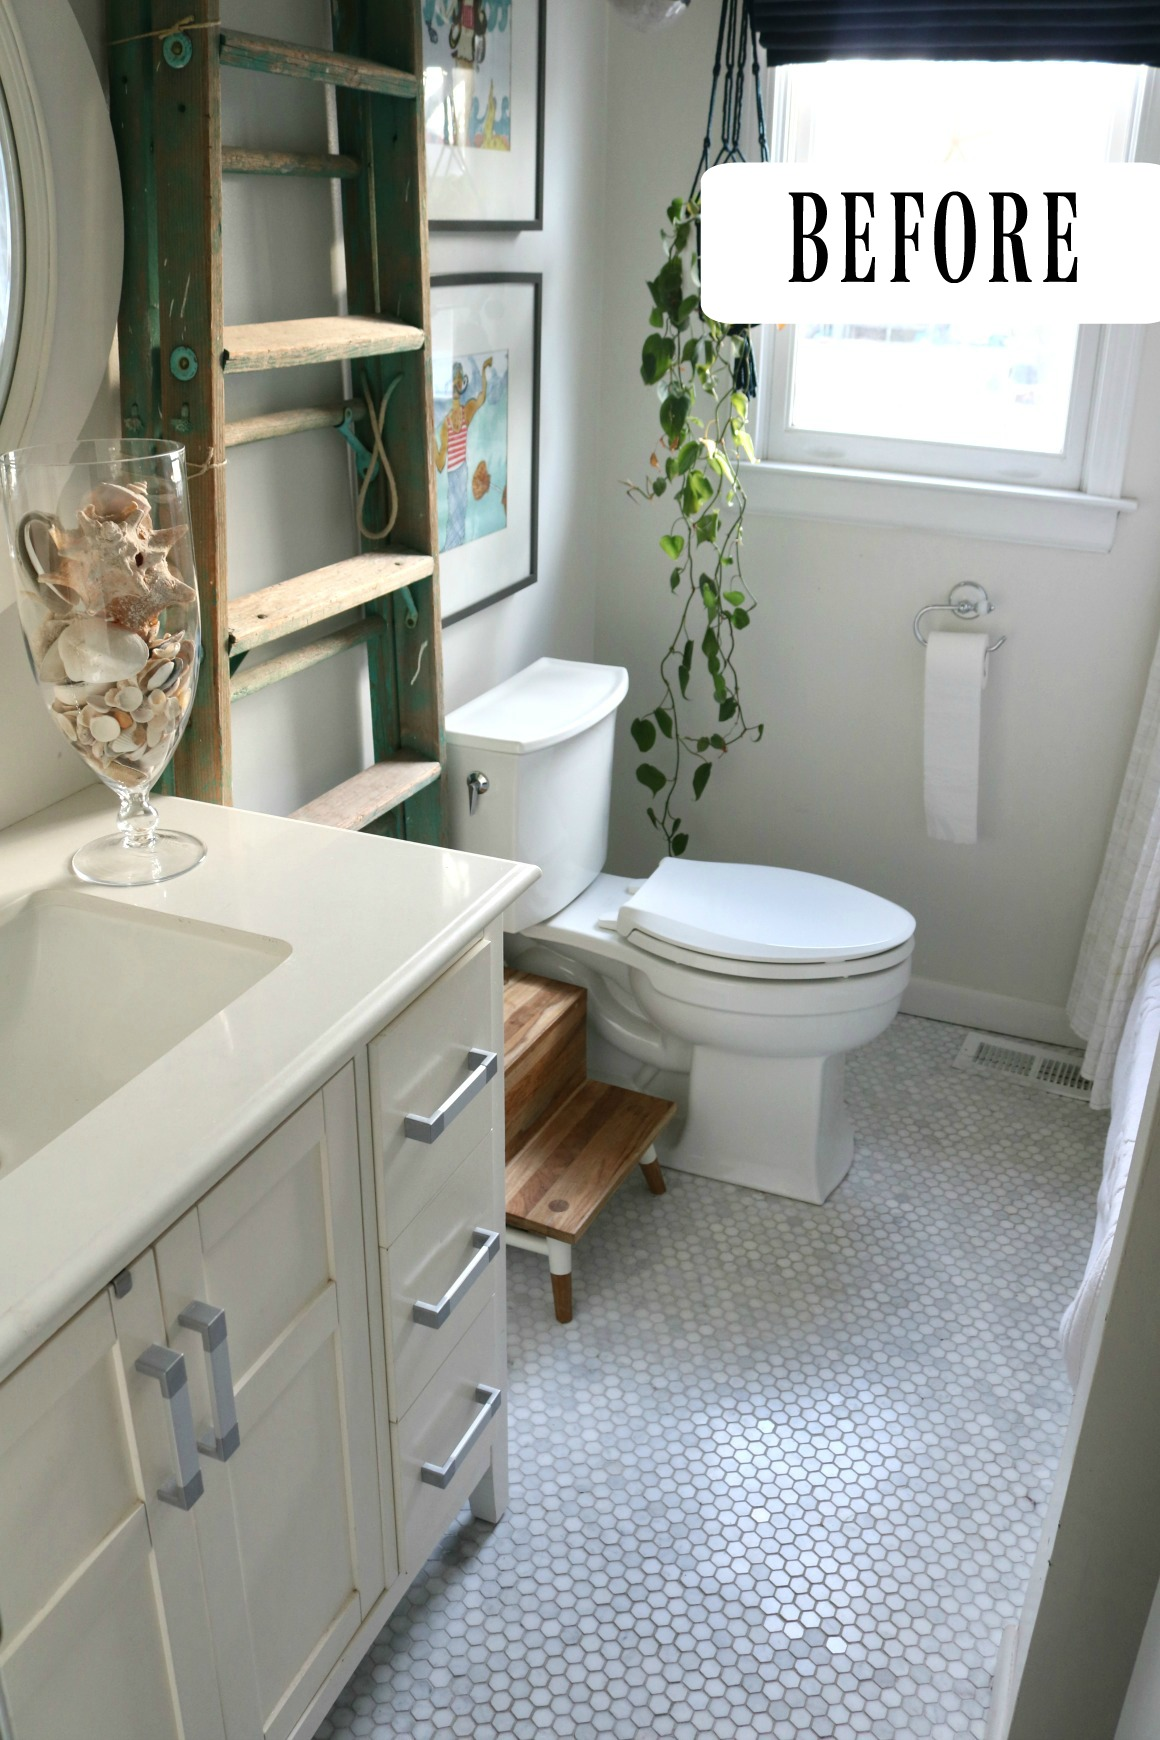 Upstairs Bathroom Remodel- The Reveal!